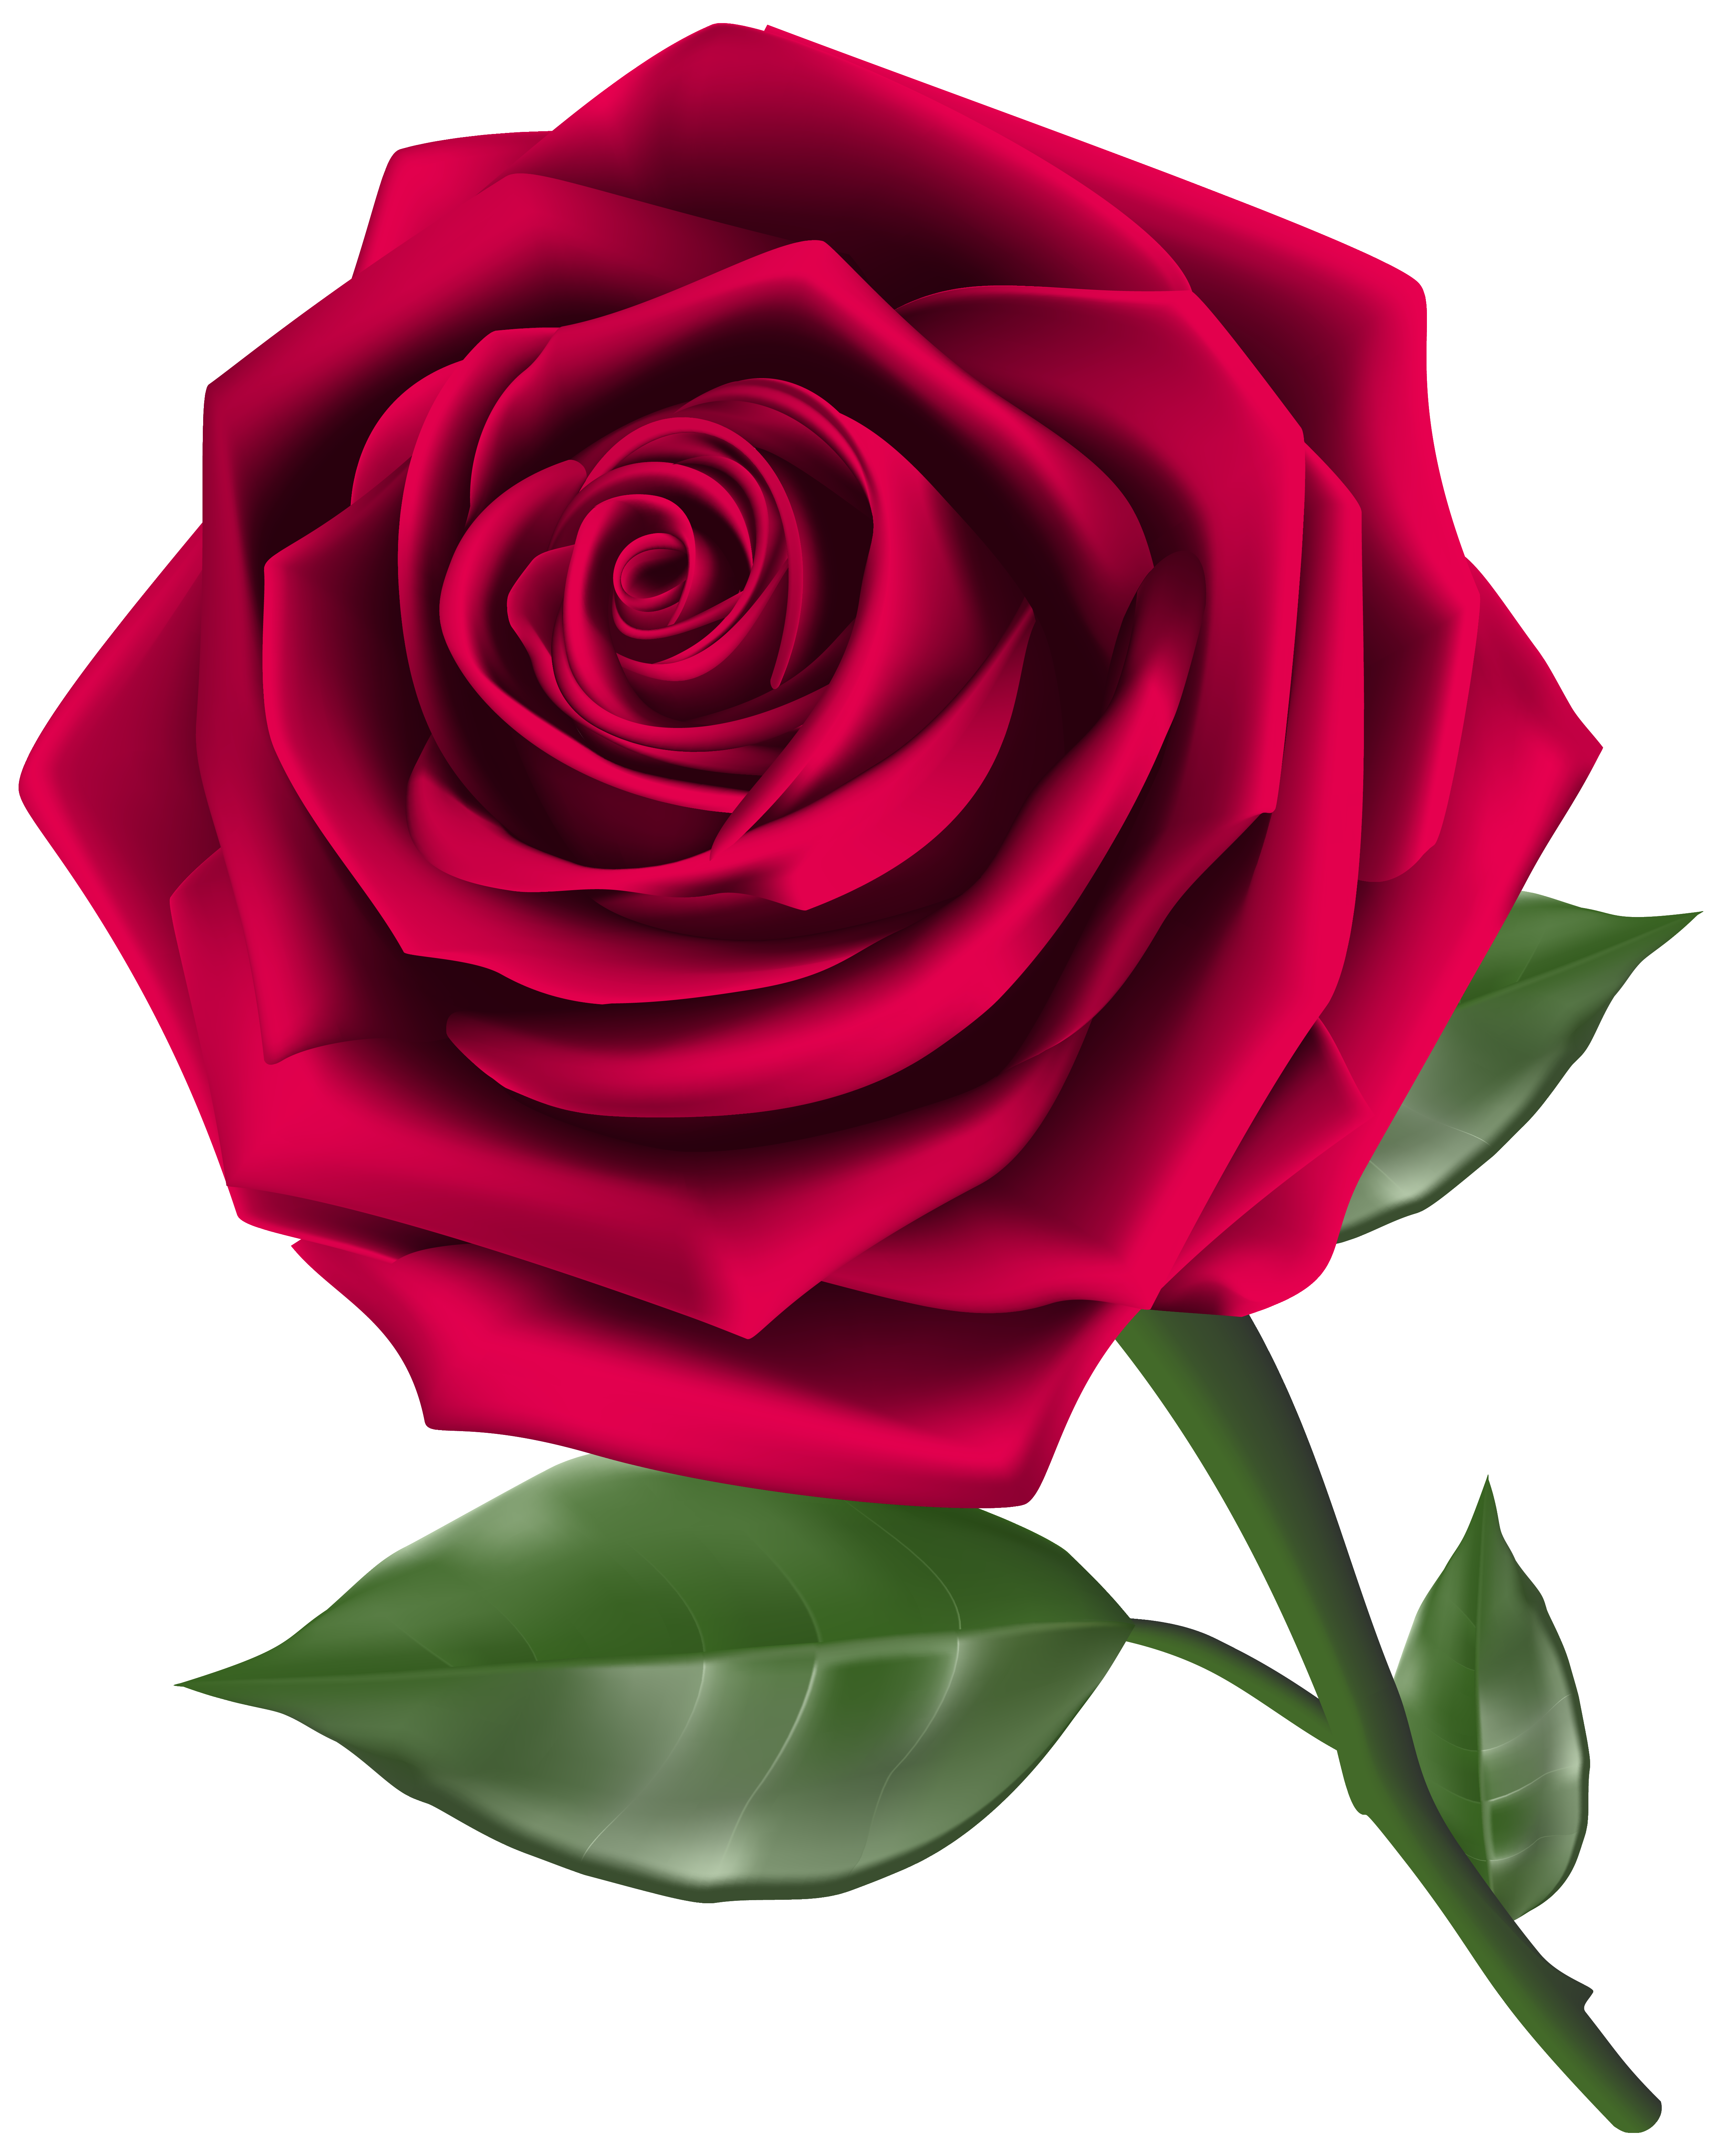 Rose clipart image stock Free 3D Roses Cliparts, Download Free Clip Art, Free Clip Art on ... stock